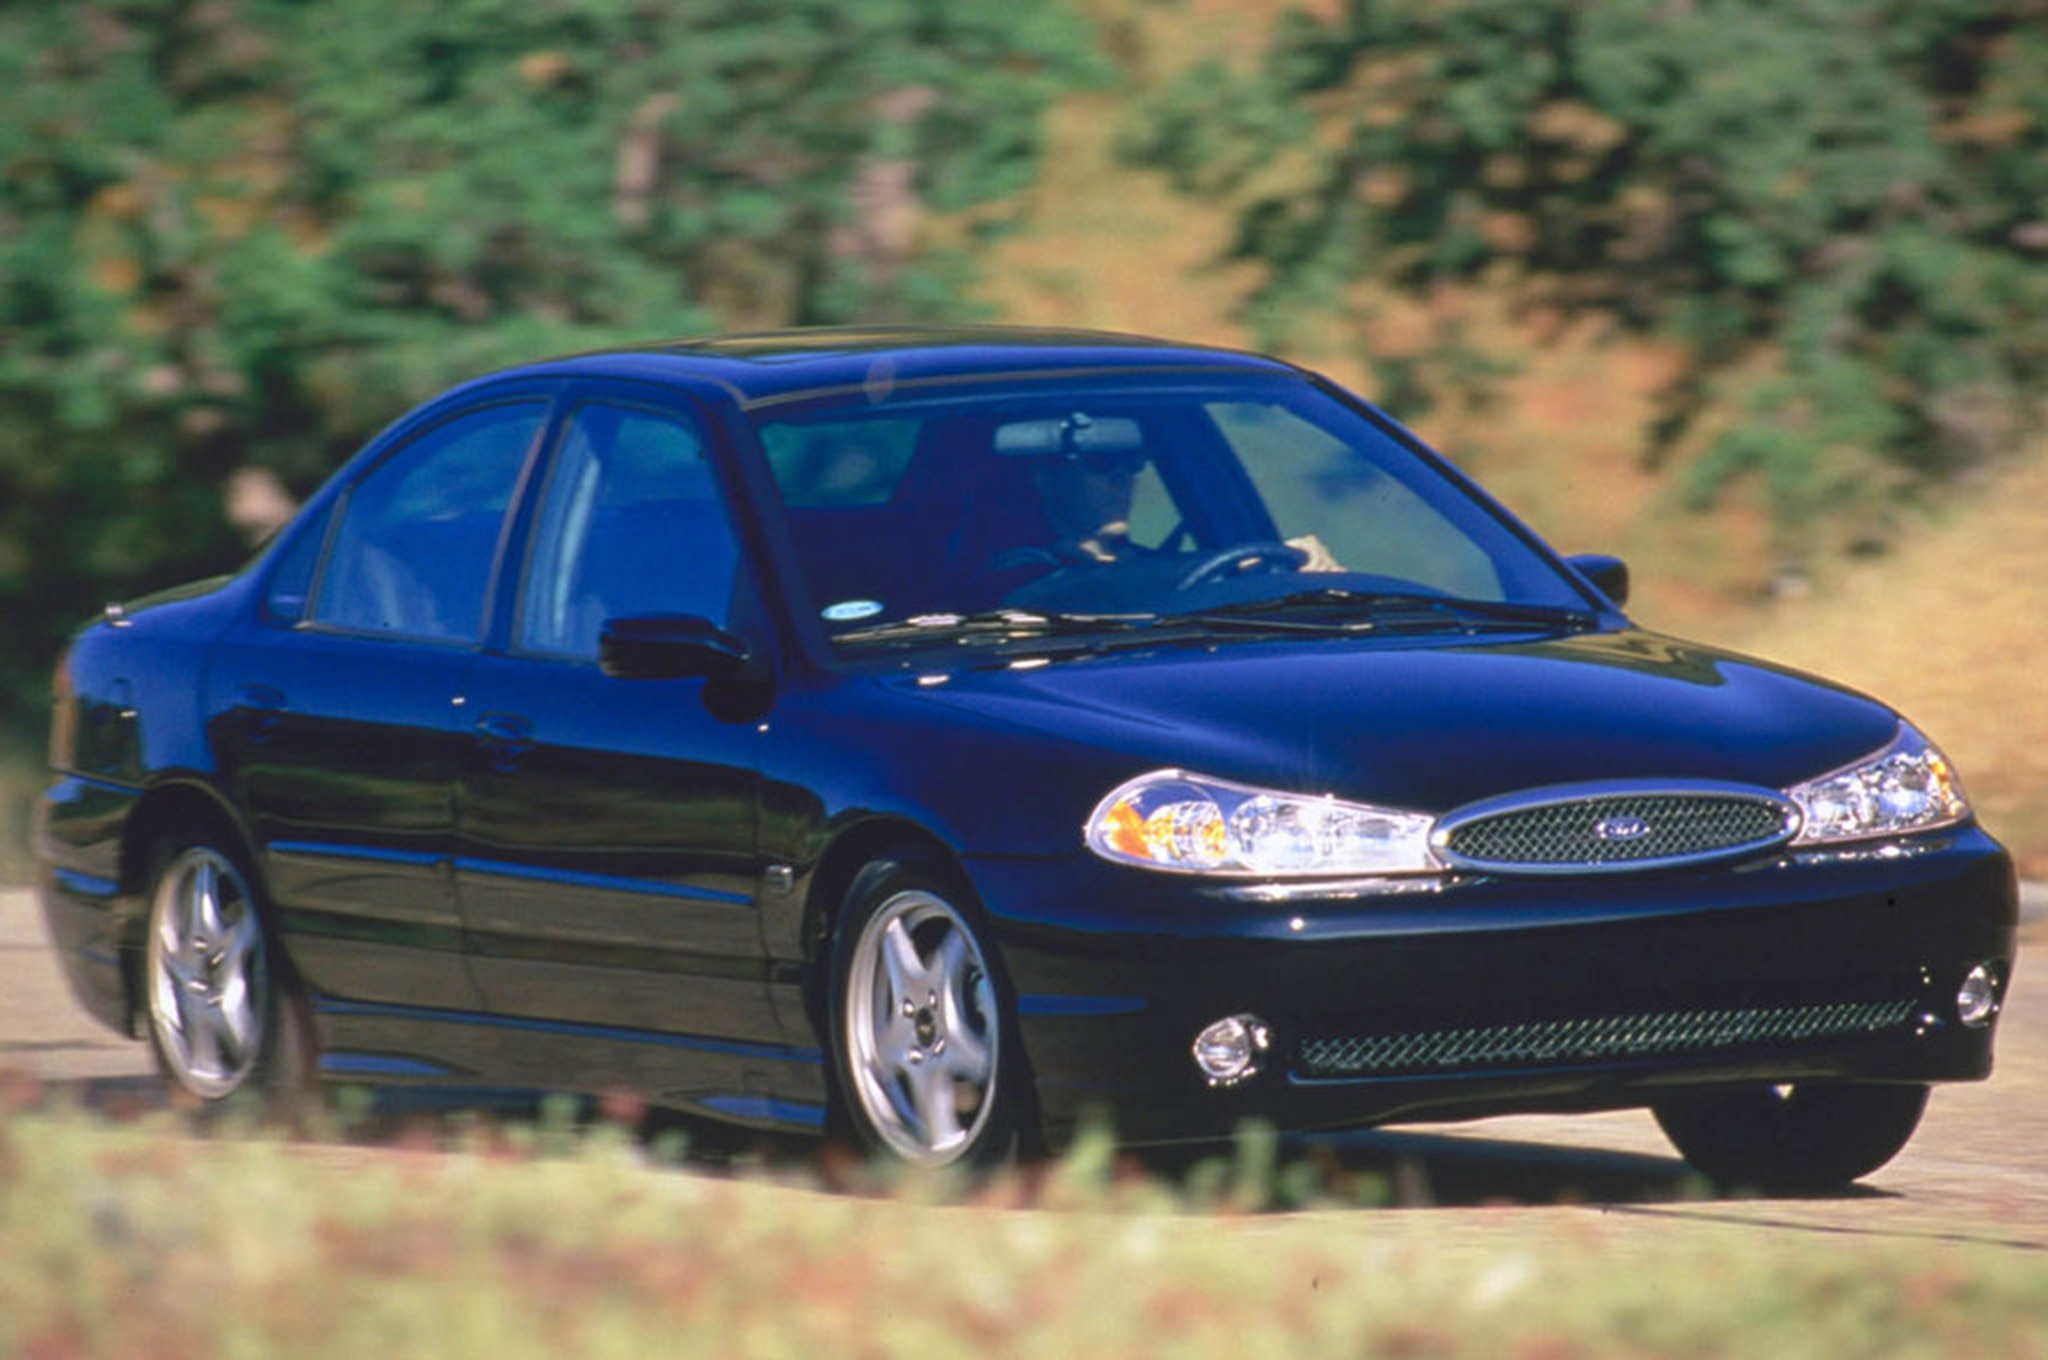 2000 Ford Contour SVT the 12 most unlikely performance cars  at edmiracle.co